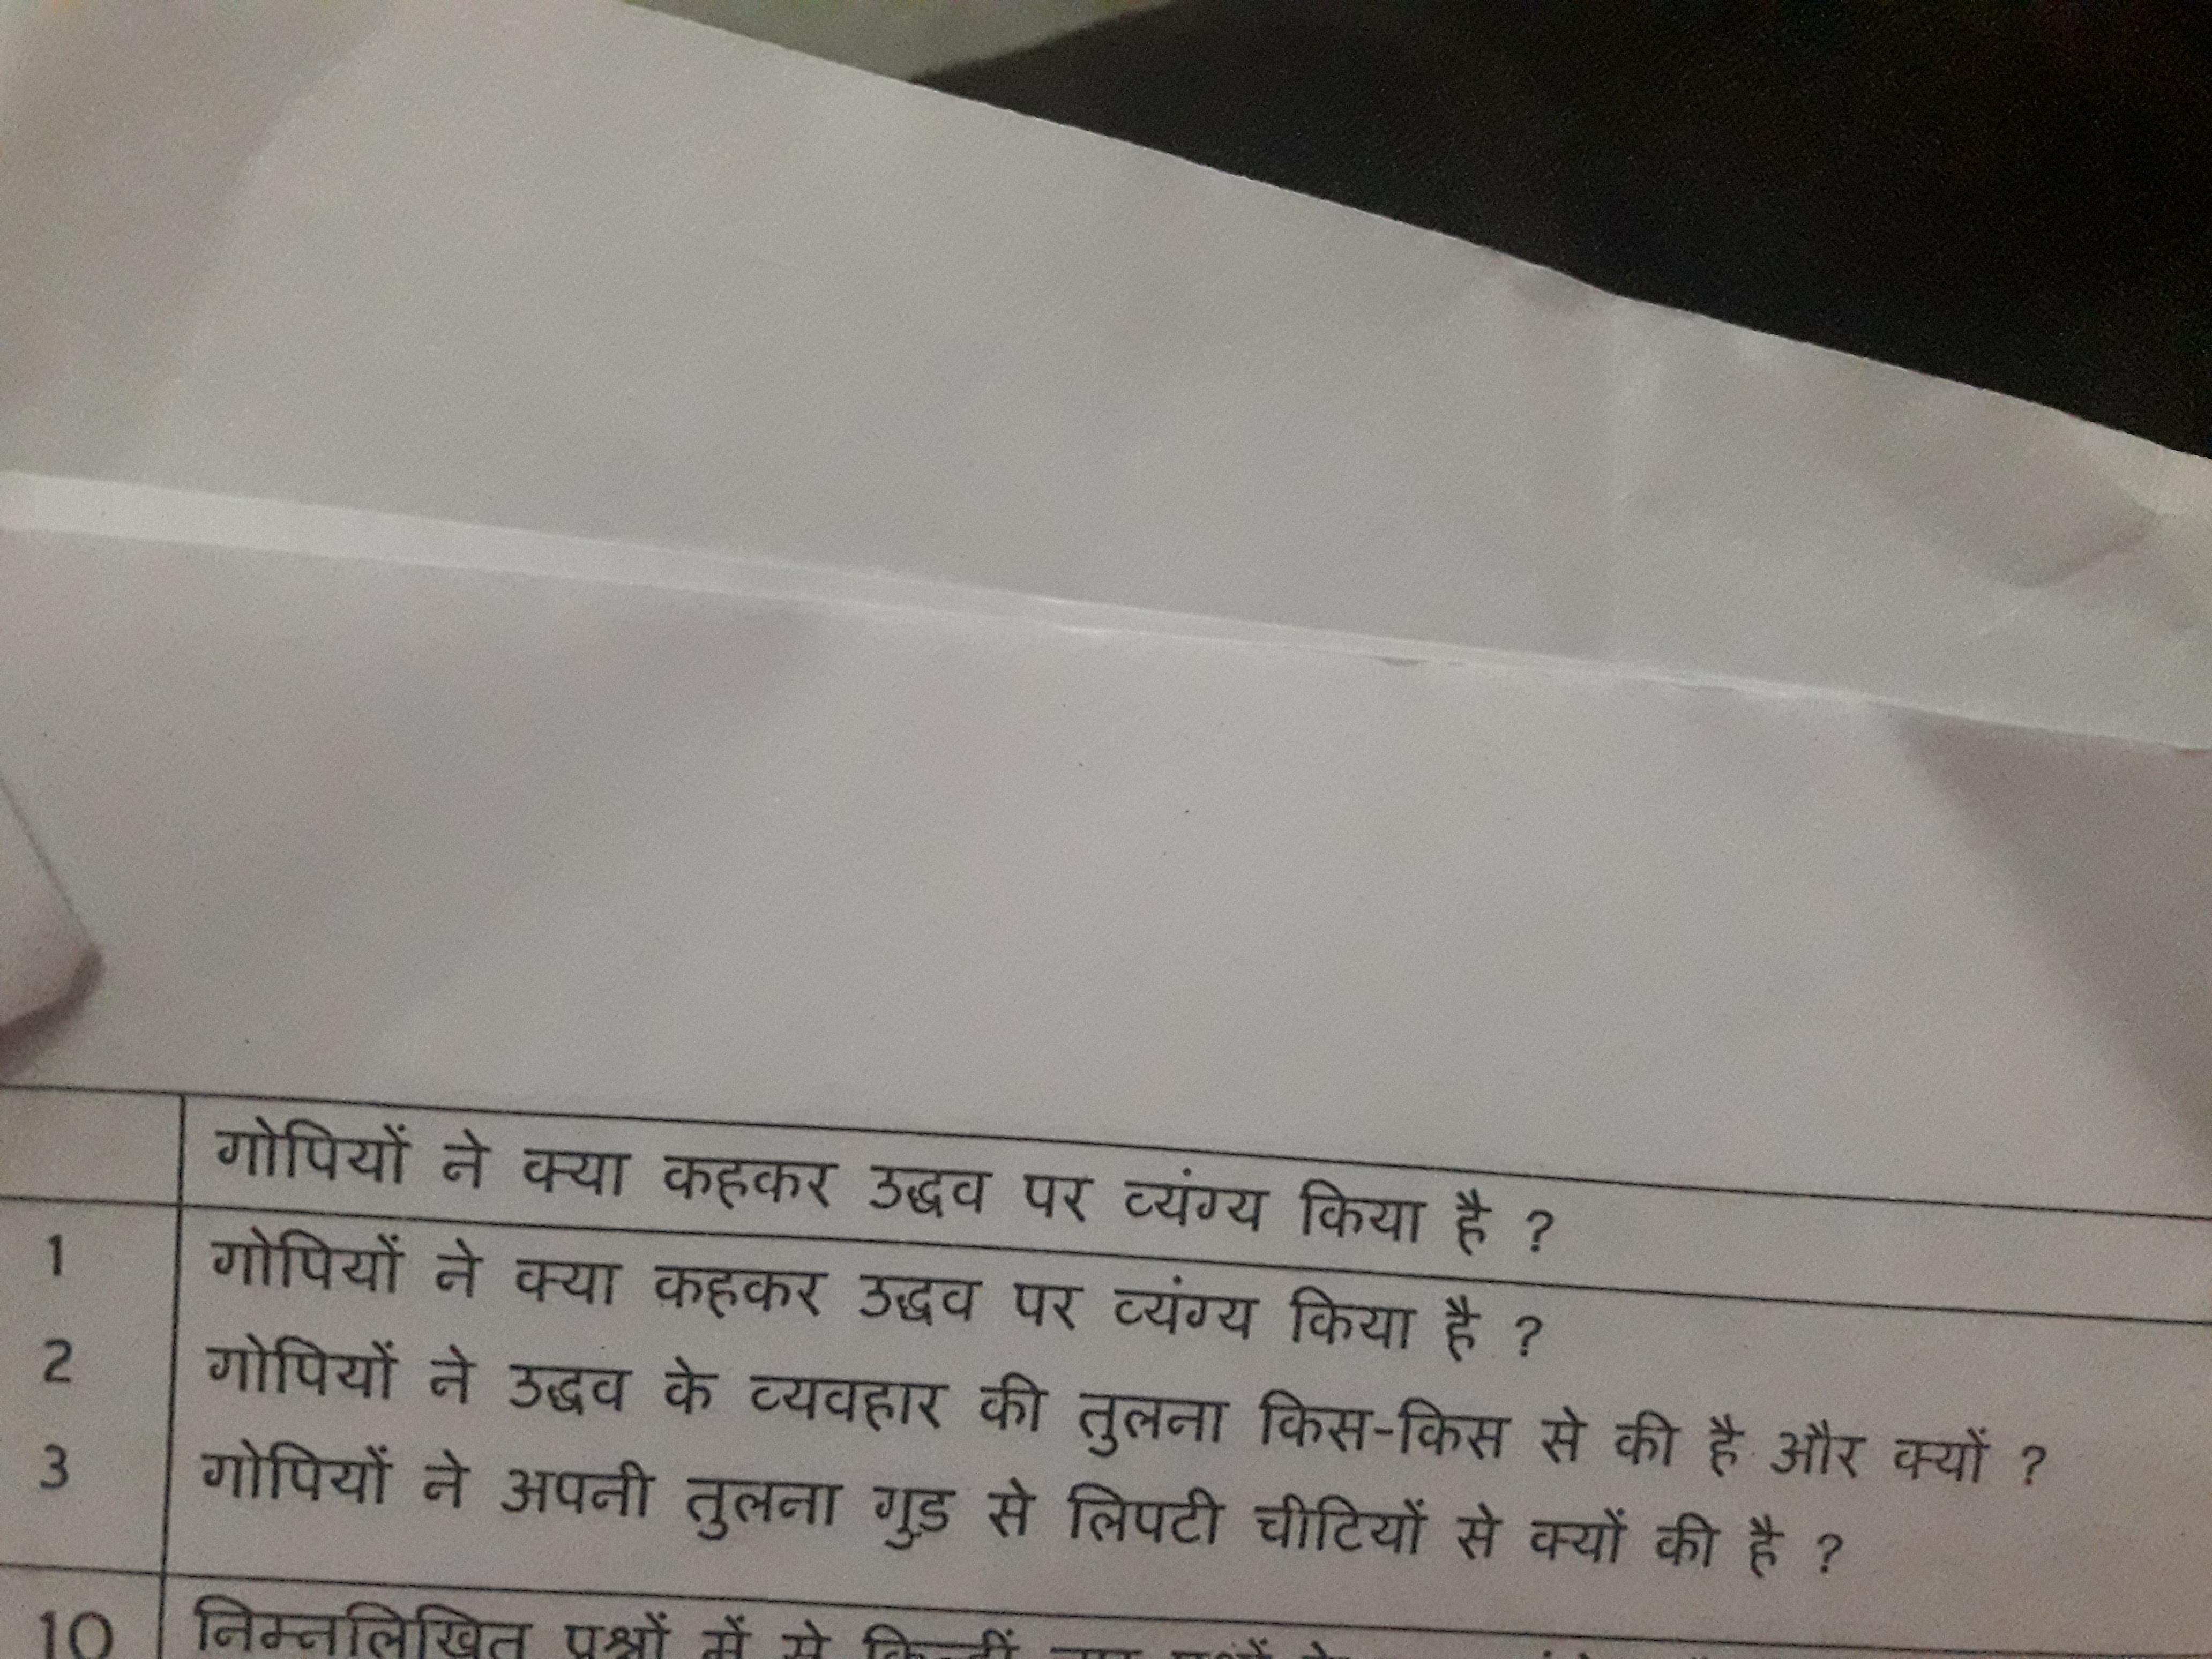 tell the answer of second question please fast I want a quick